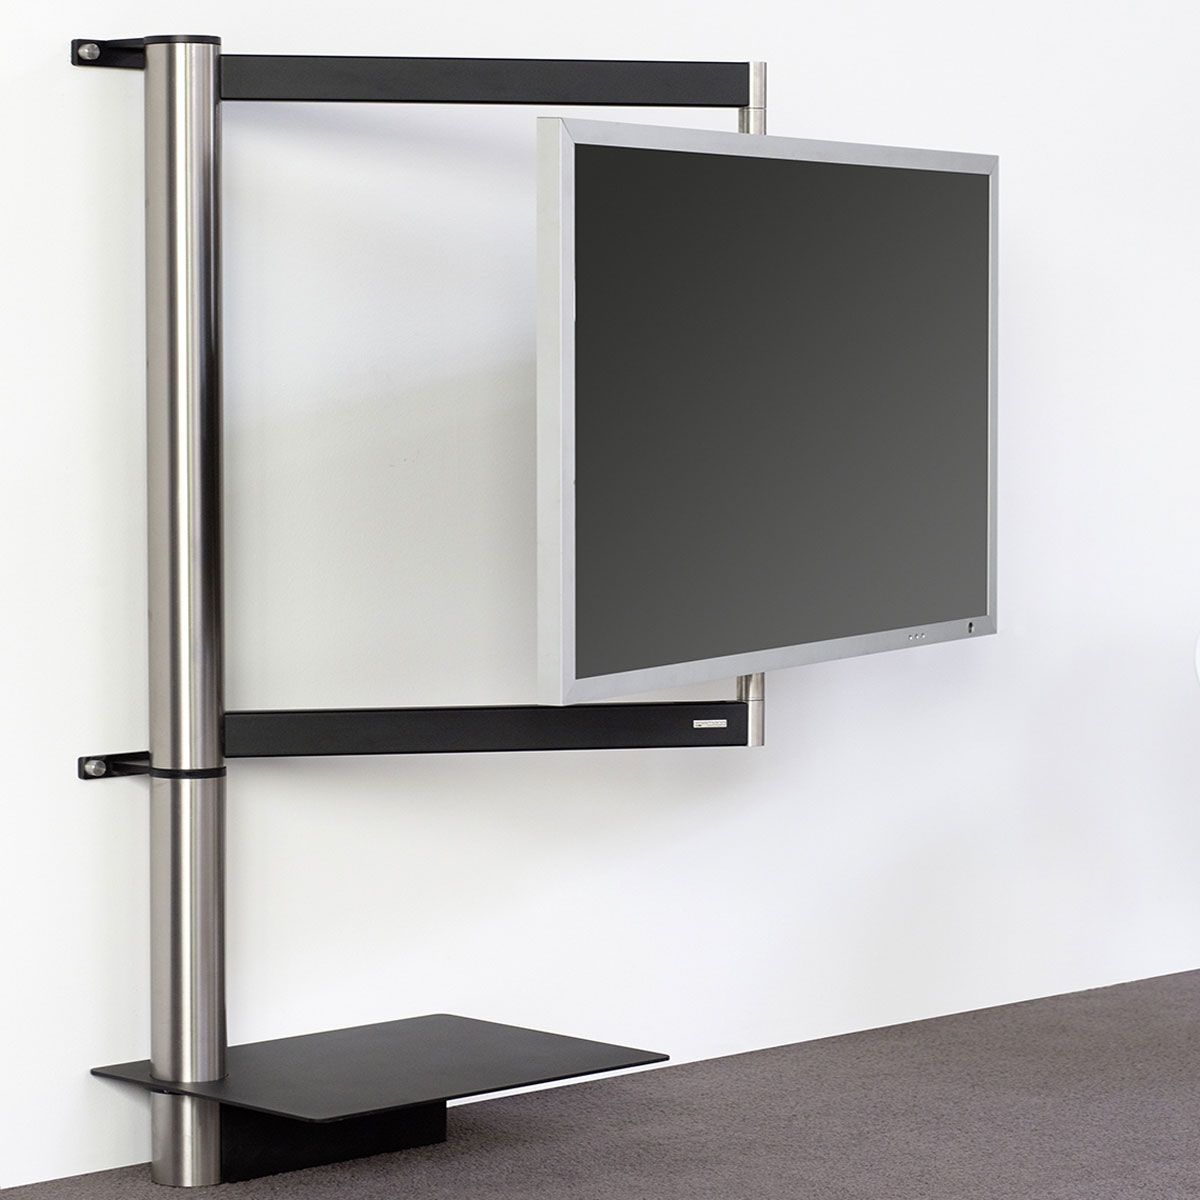 tv wandhalter fernsehhalter schwenkbar rack schwenkarm tv in 2019 swivel tv swivel tv stand. Black Bedroom Furniture Sets. Home Design Ideas